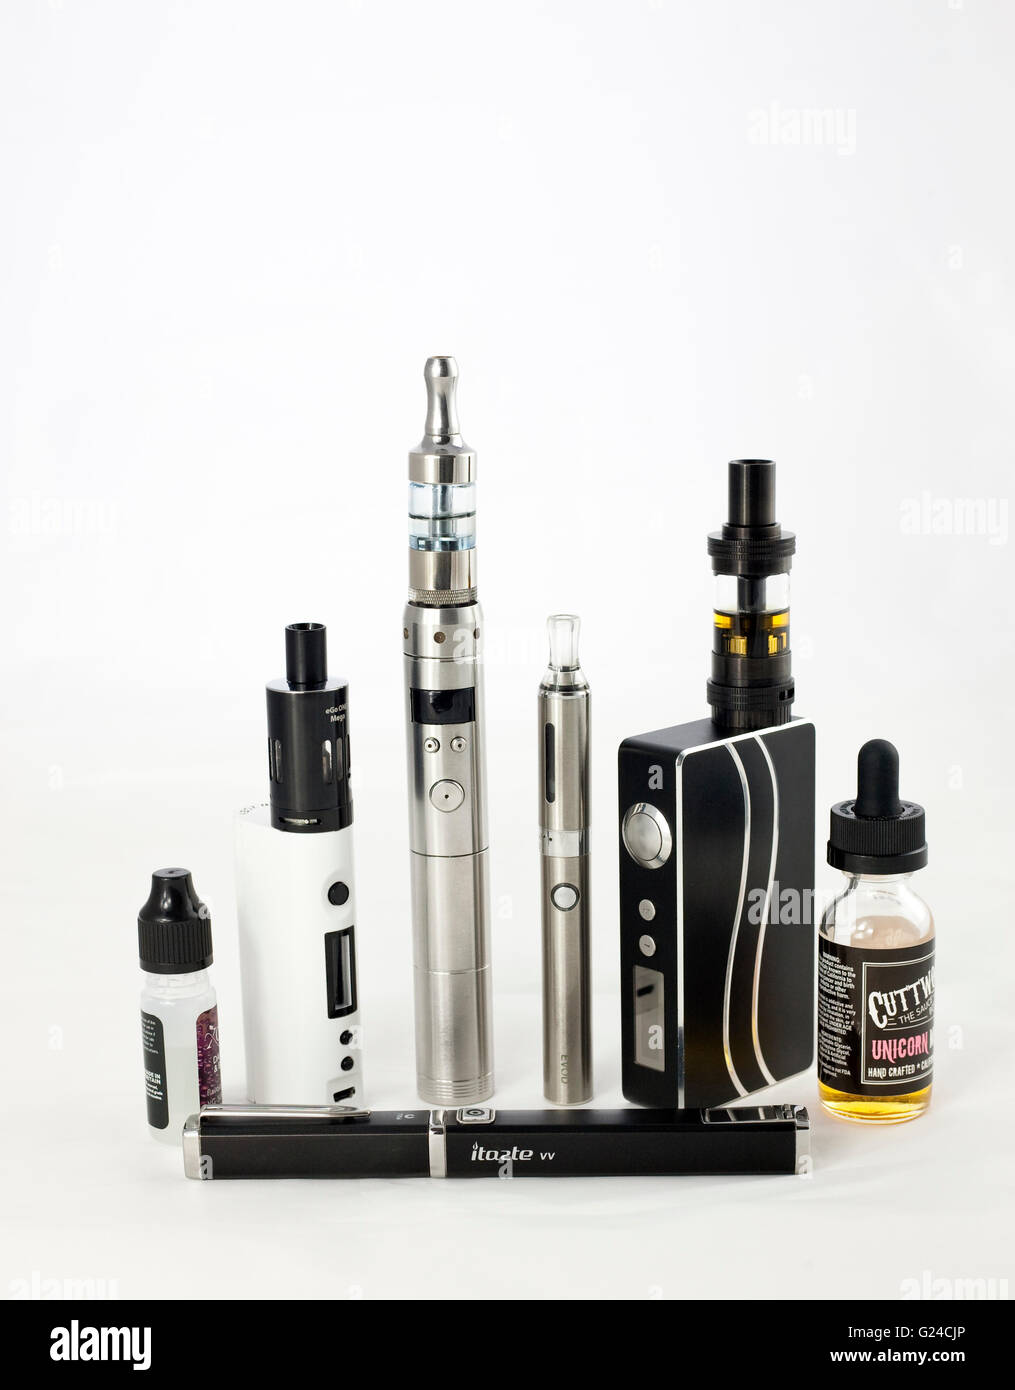 a range of different e cigarettes that are used for vaping liquid with or without nicotine - Stock Image